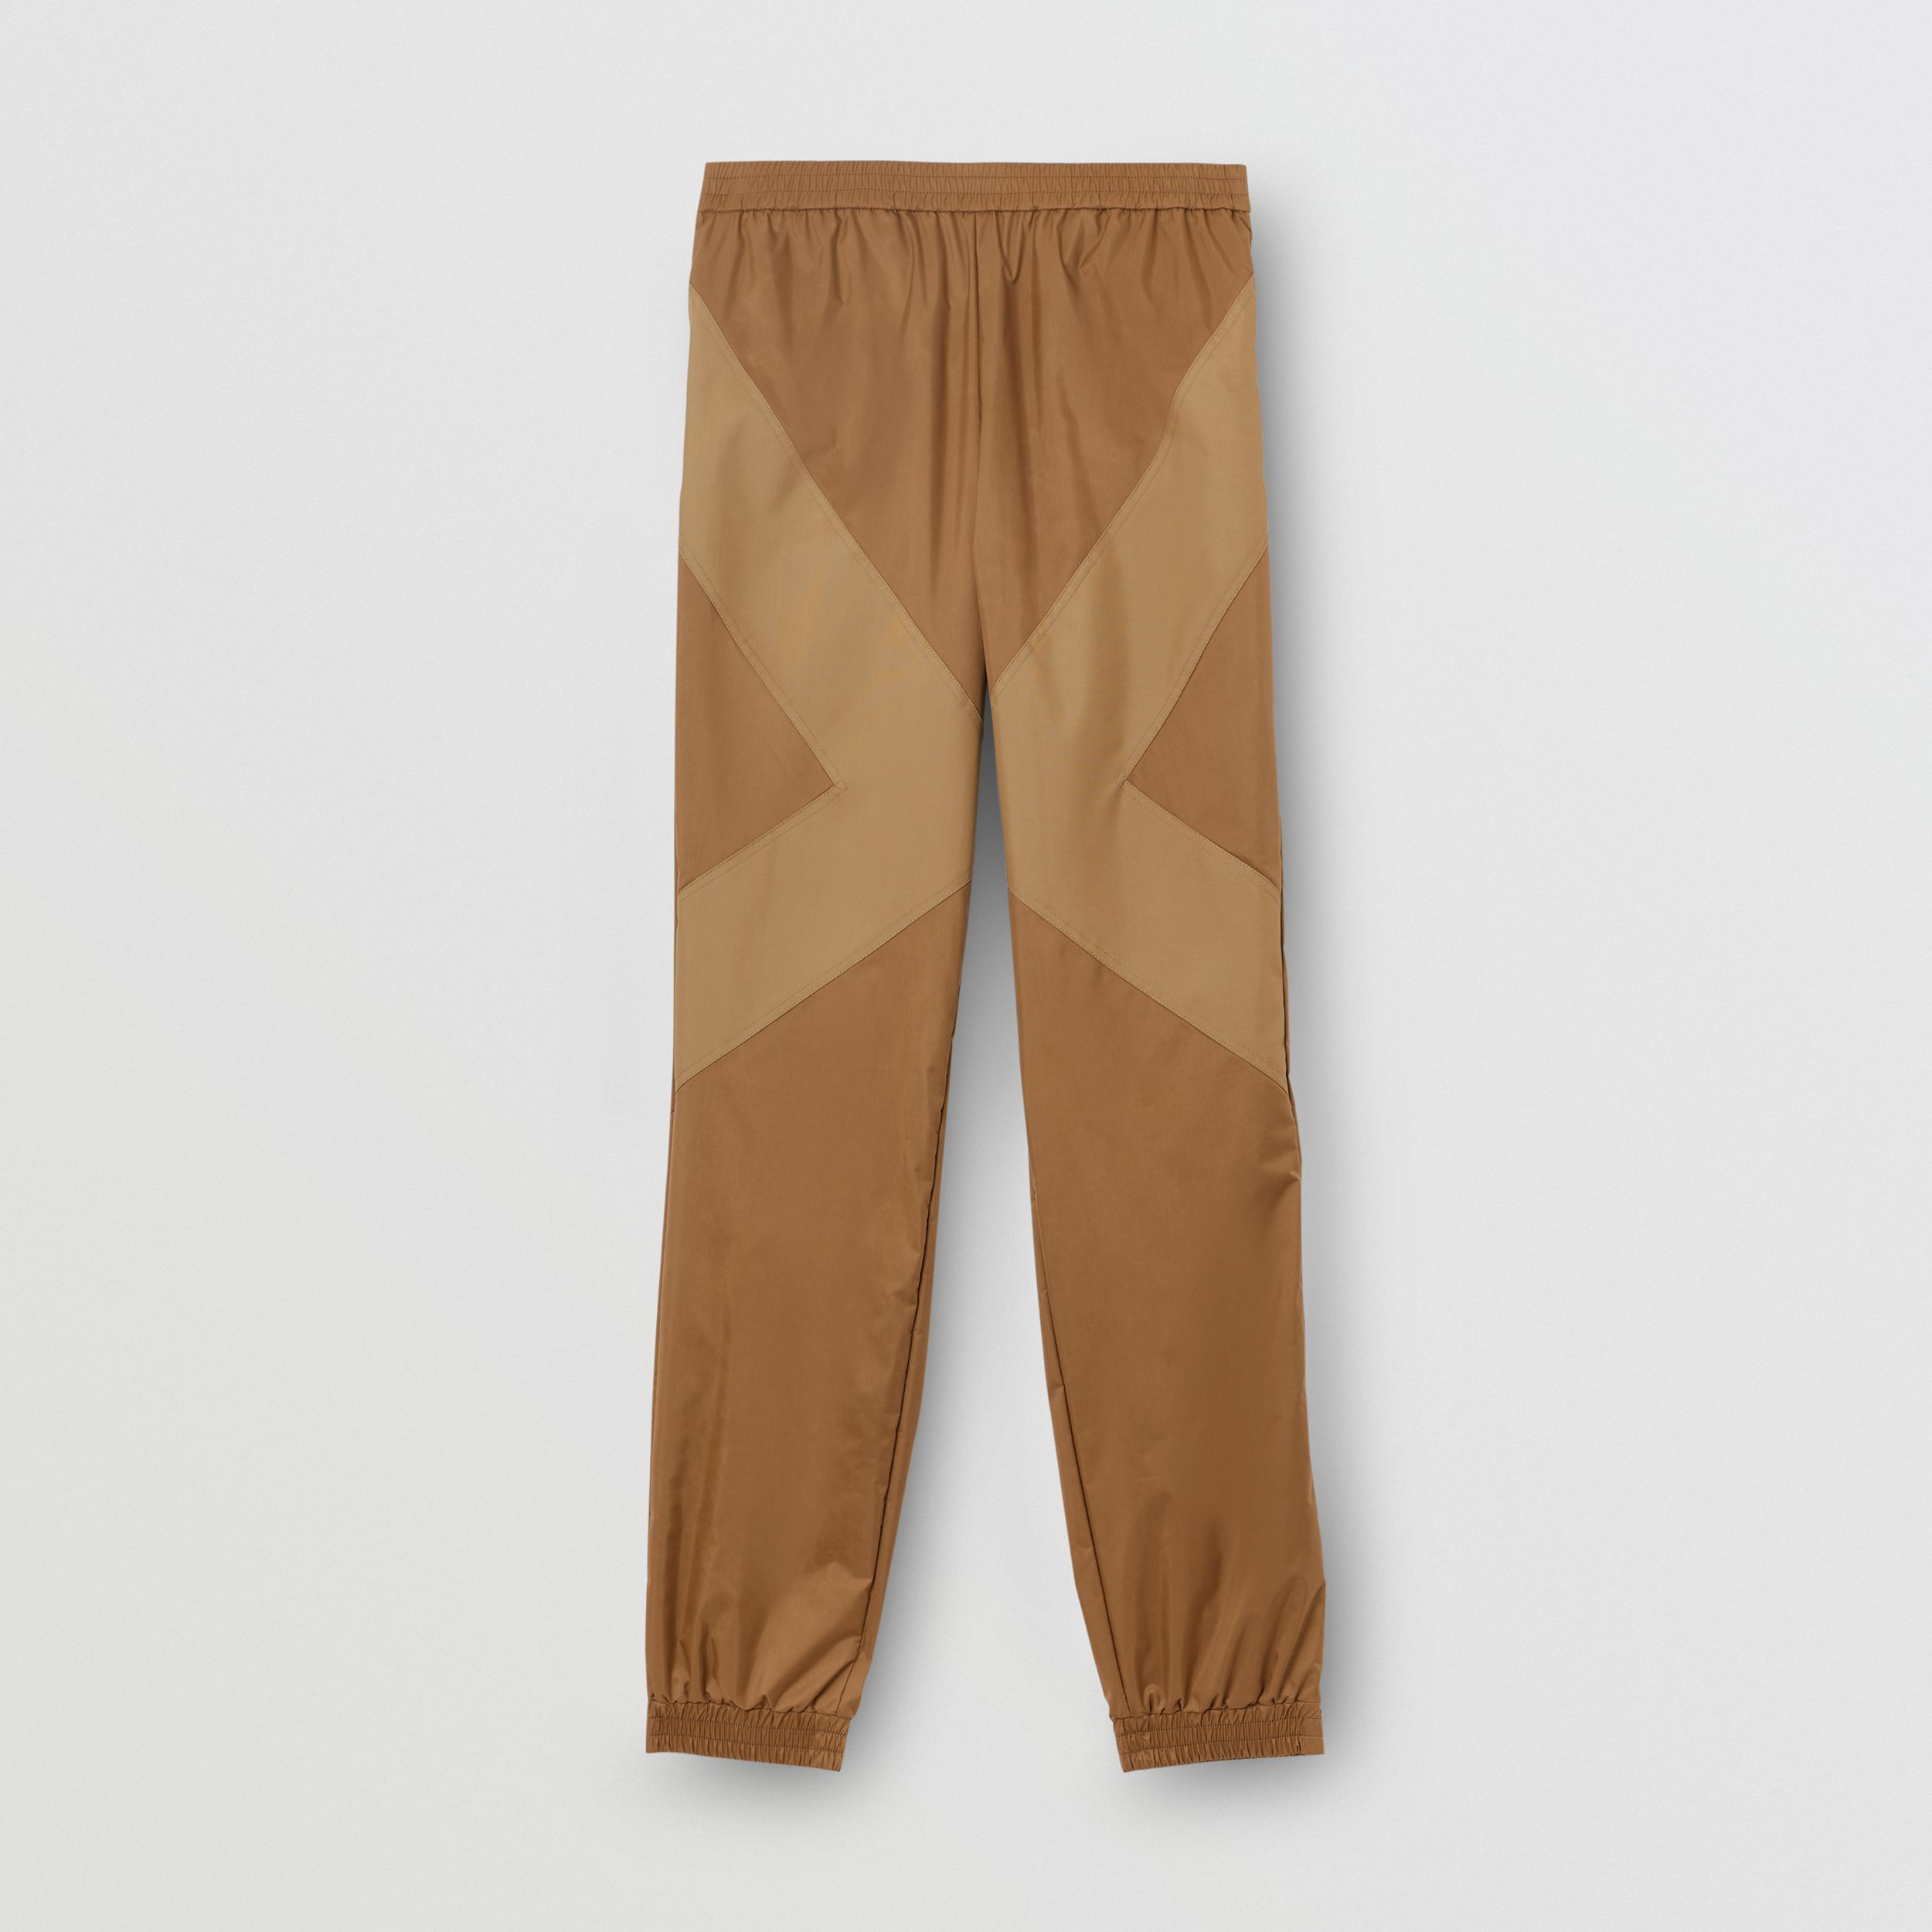 Two-tone Nylon Trackpants in Warm Walnut - Men | Burberry - 4